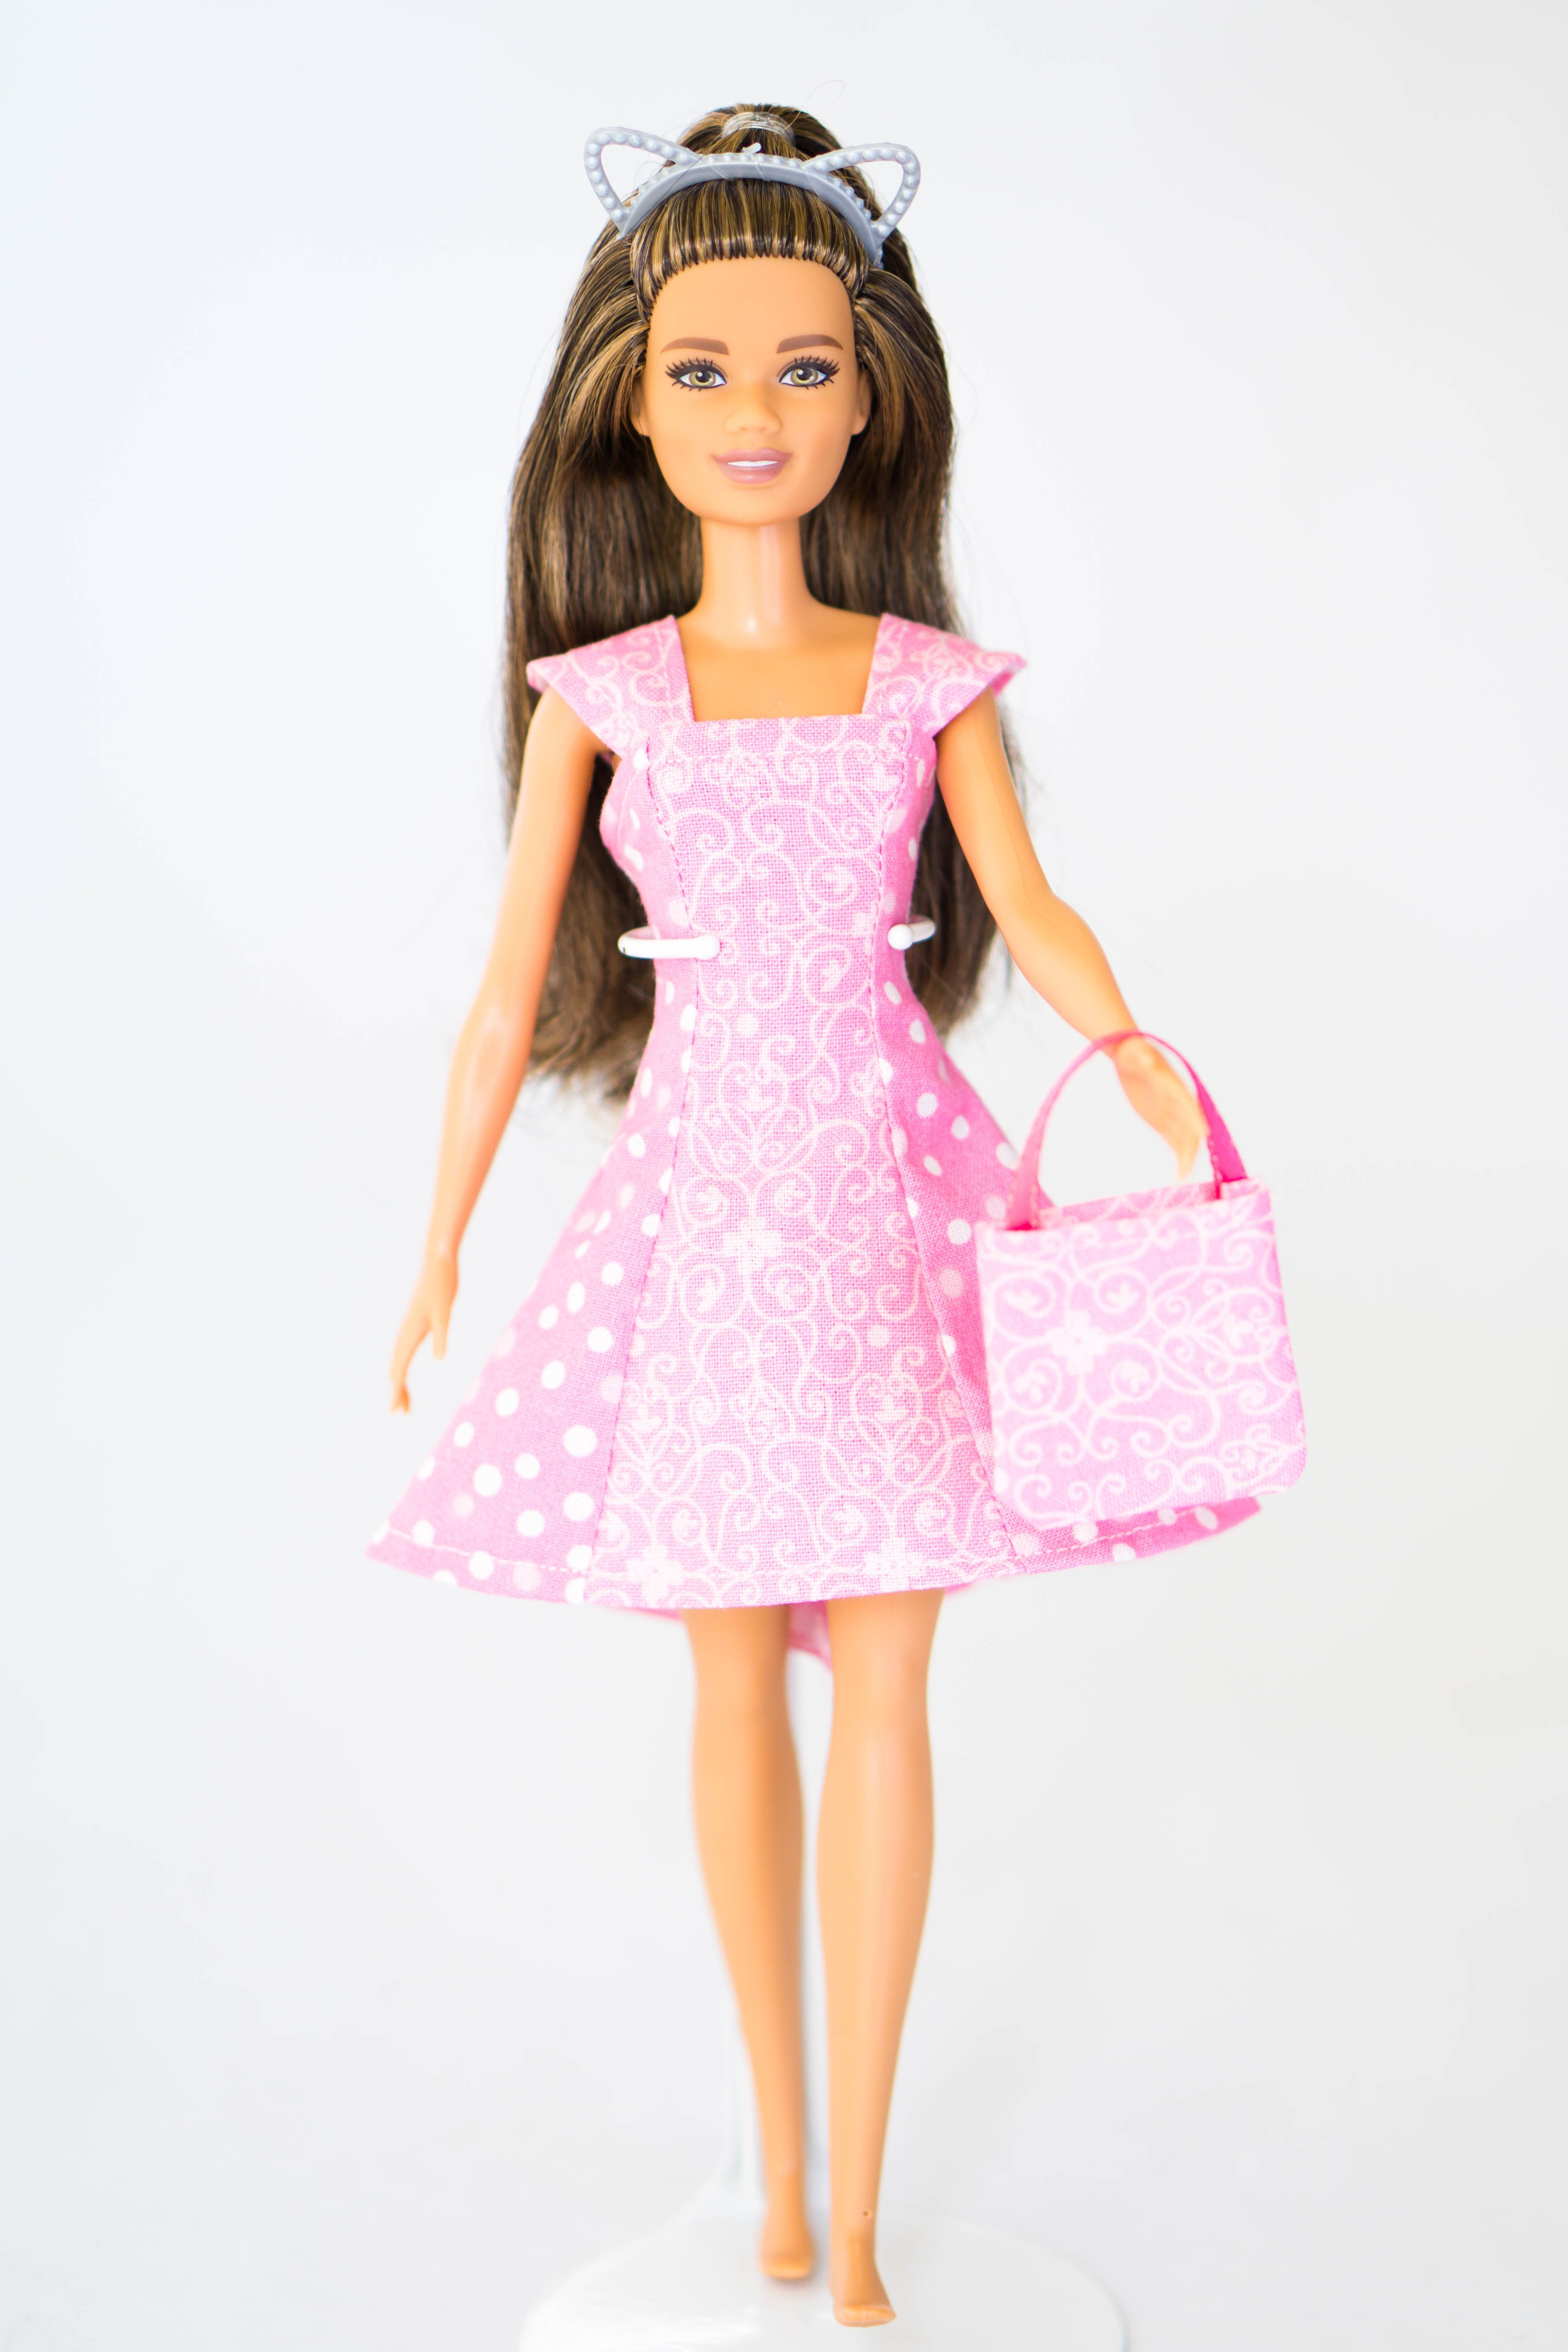 Fun Pink Princess Gown with Sleeves Made to Fit the Barbie Doll Dolls & Bears Clothing